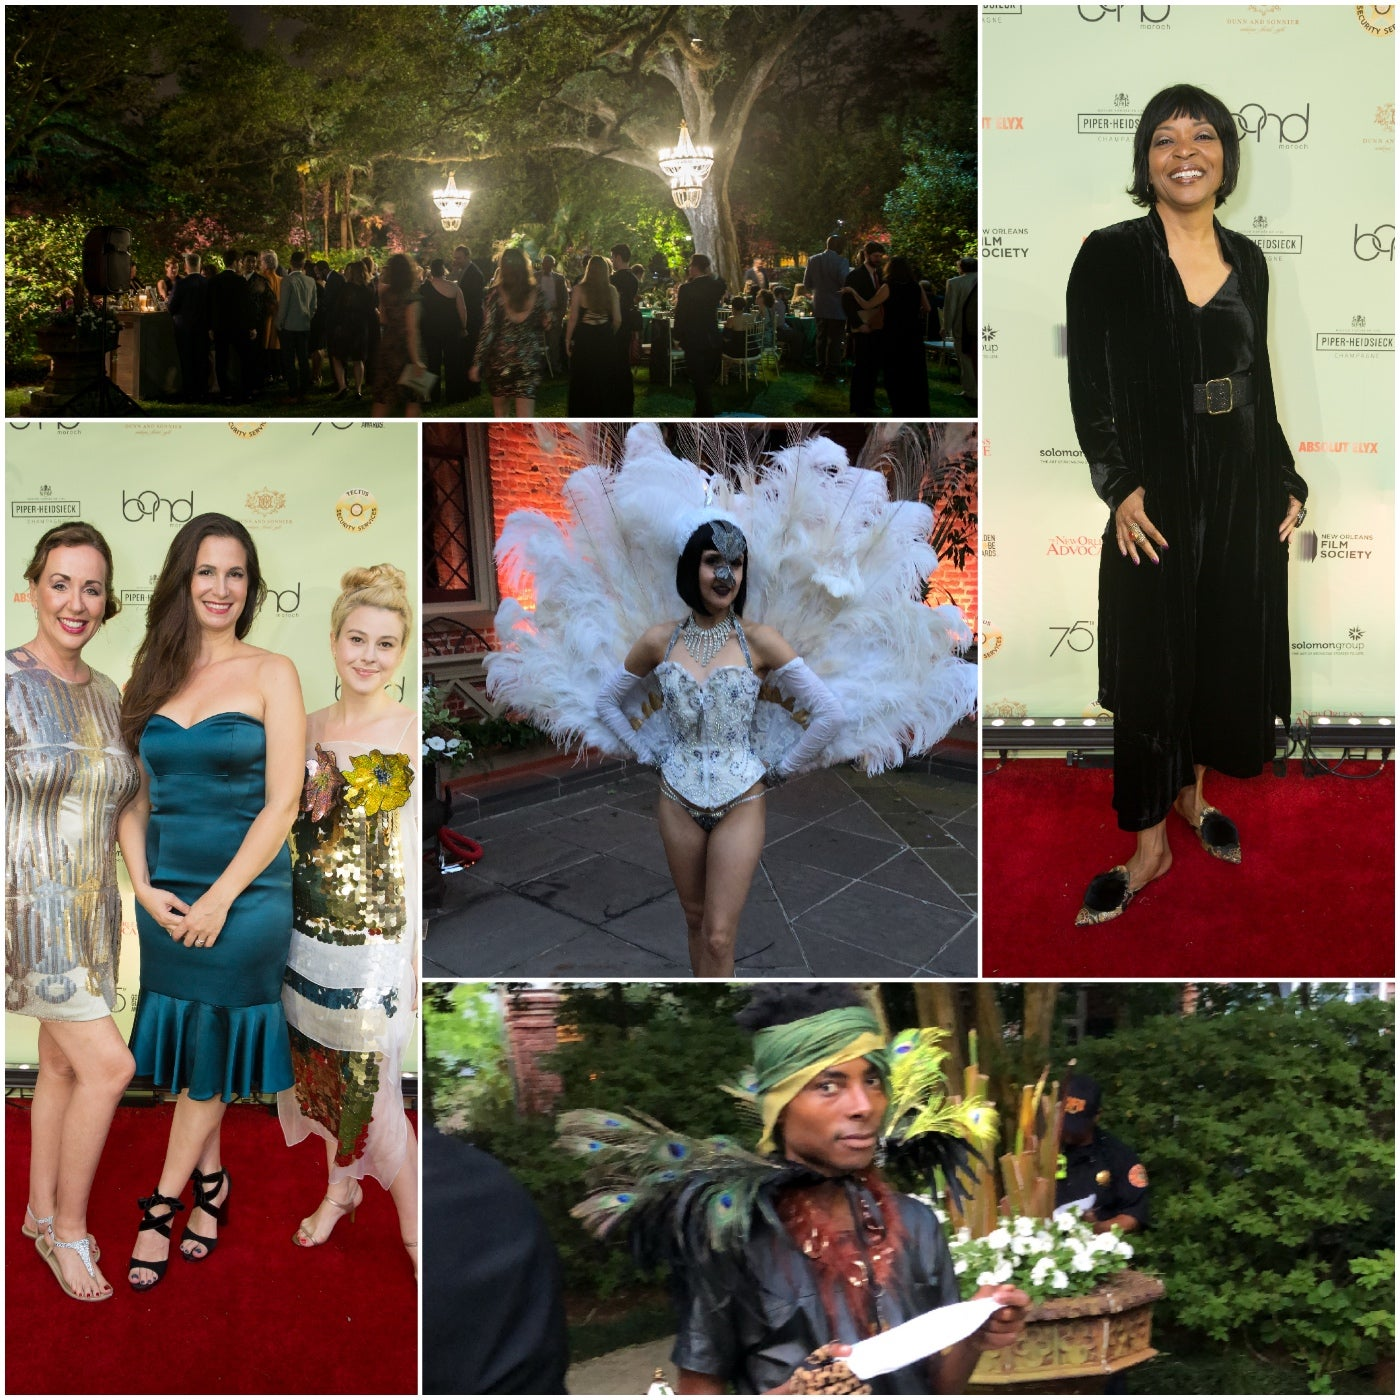 Scenes from the NOFS Spring gala